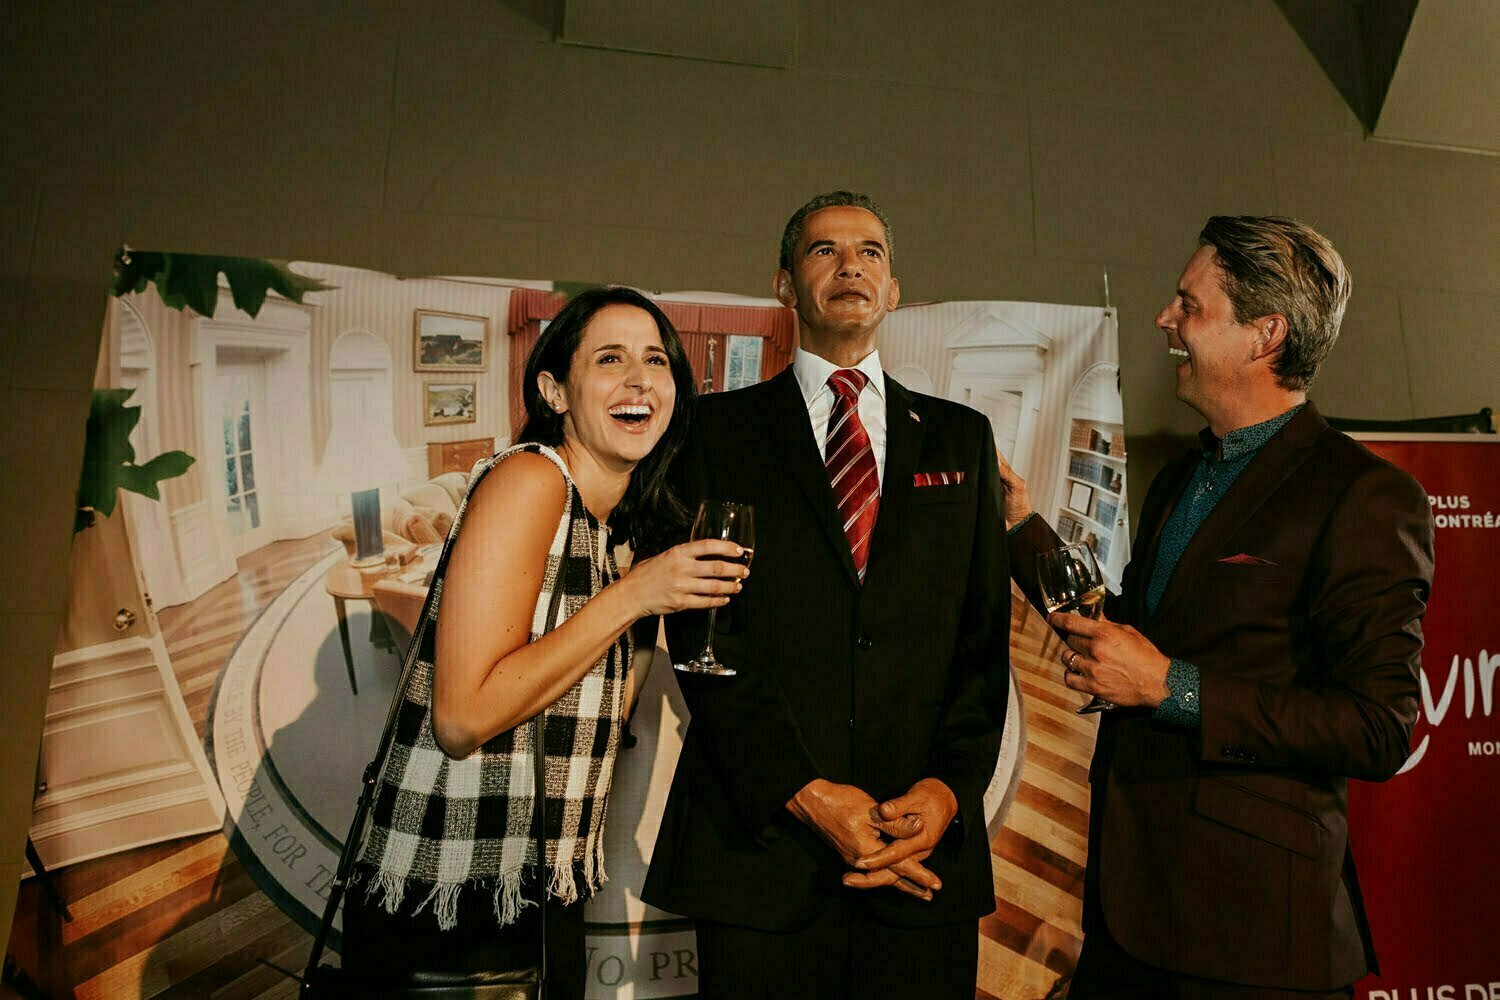 montreal-event-photography-guests-wax-obama